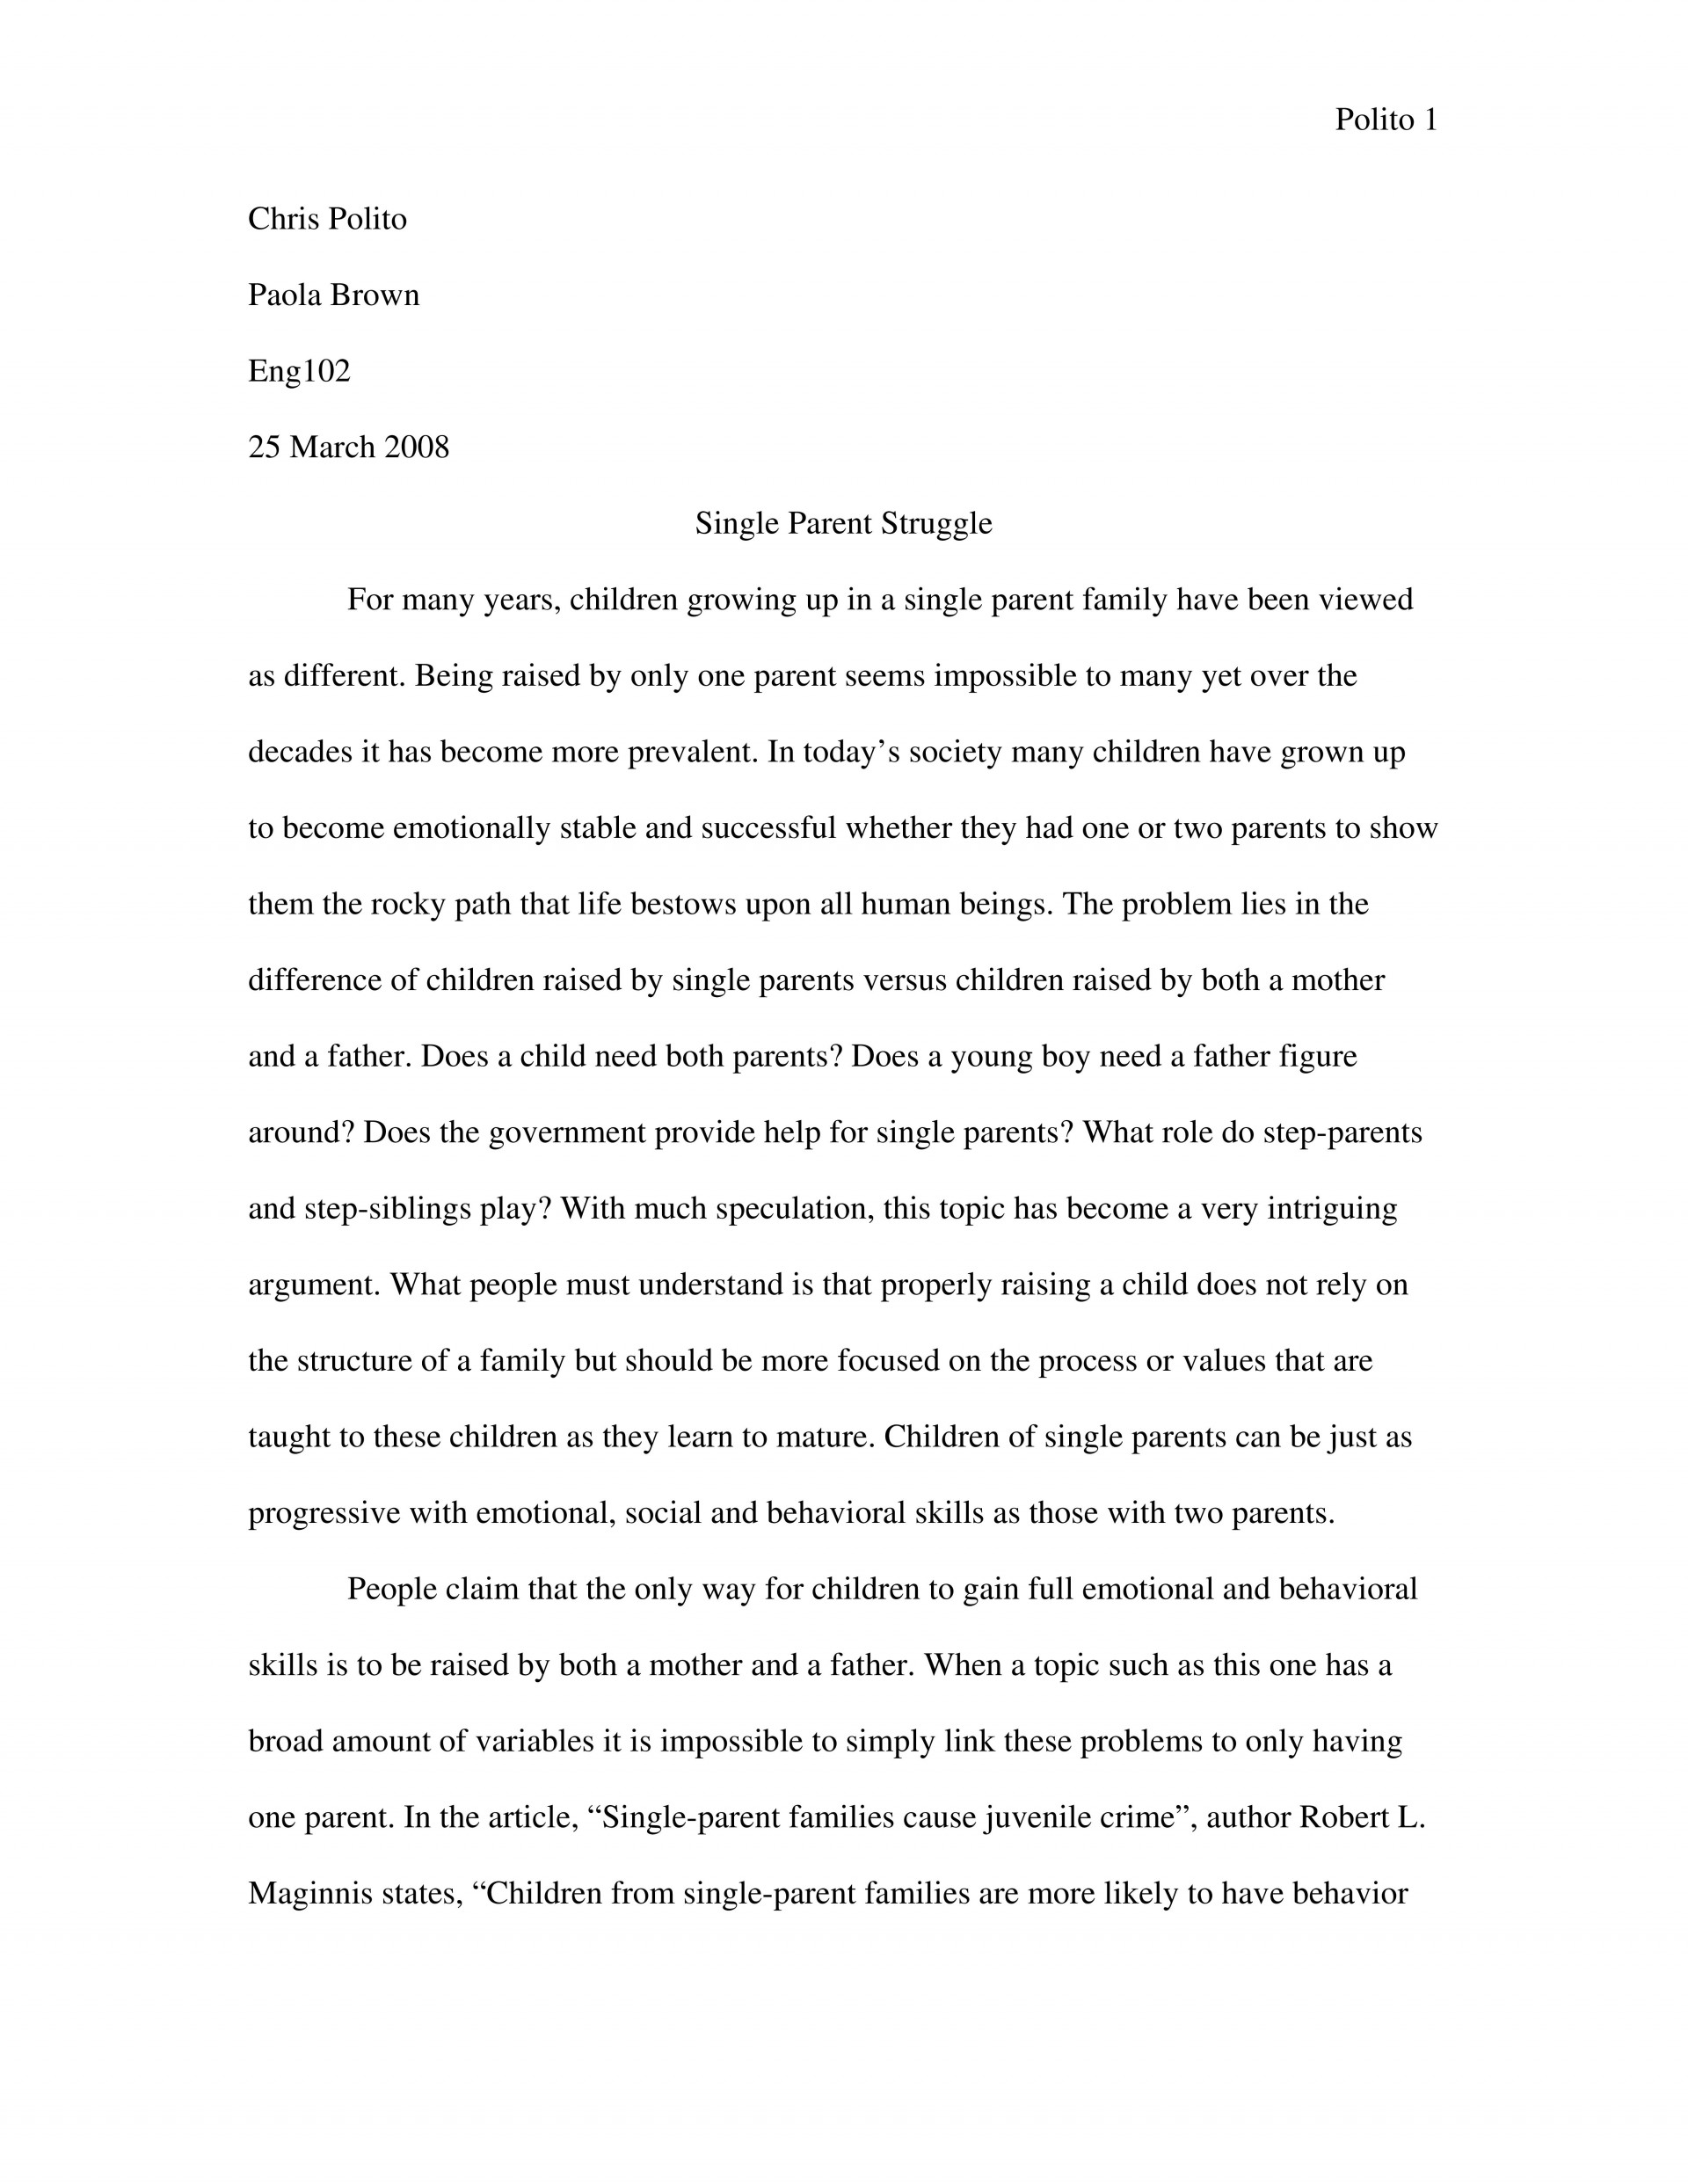 004 Expository Essay Sample 2 Explanatory Outstanding Example Examples For High School Pdf College 1920